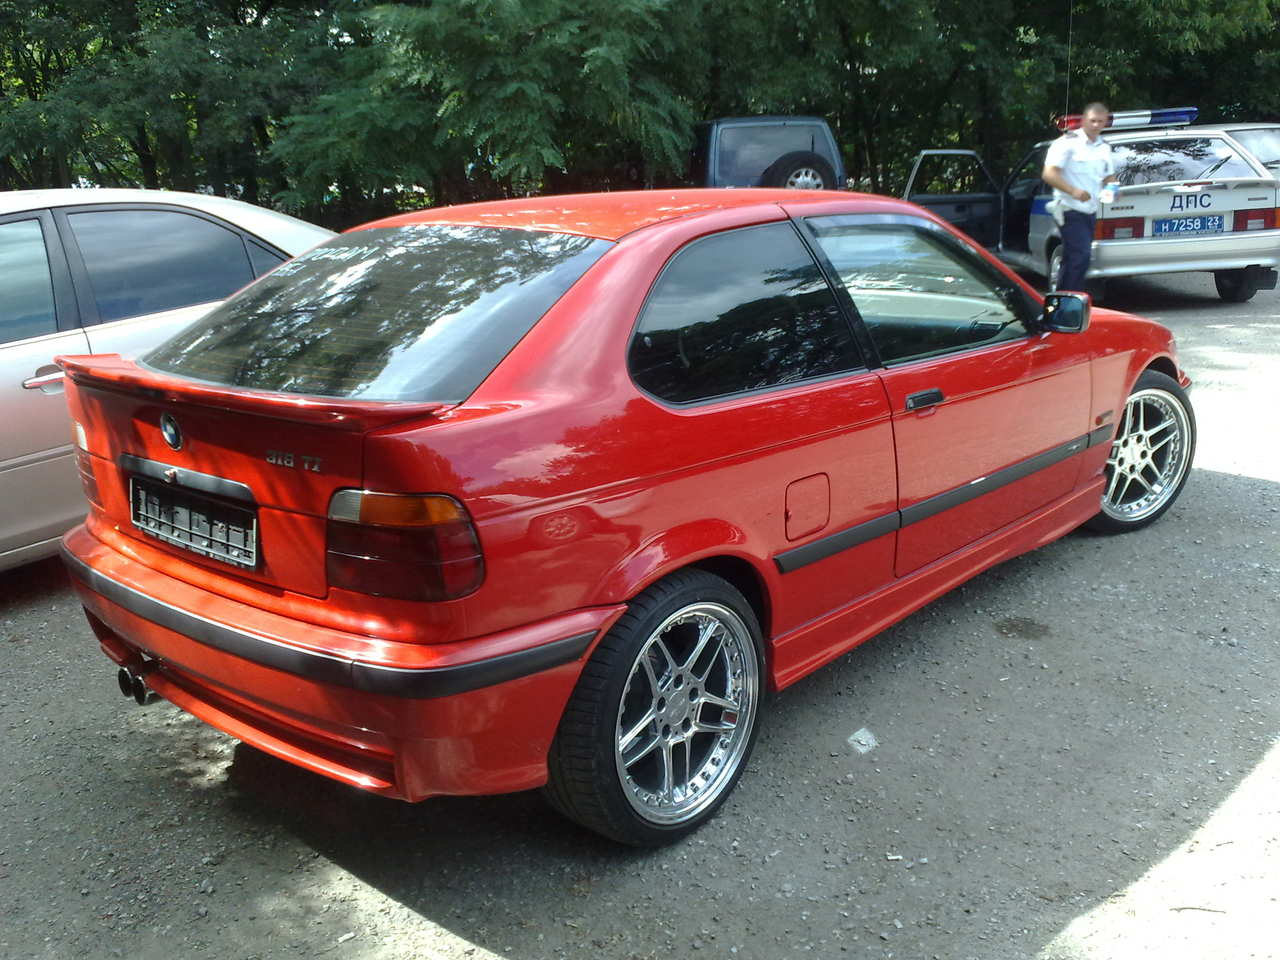 Bmw 318ti 1995 Review Amazing Pictures And Images Look At The Car